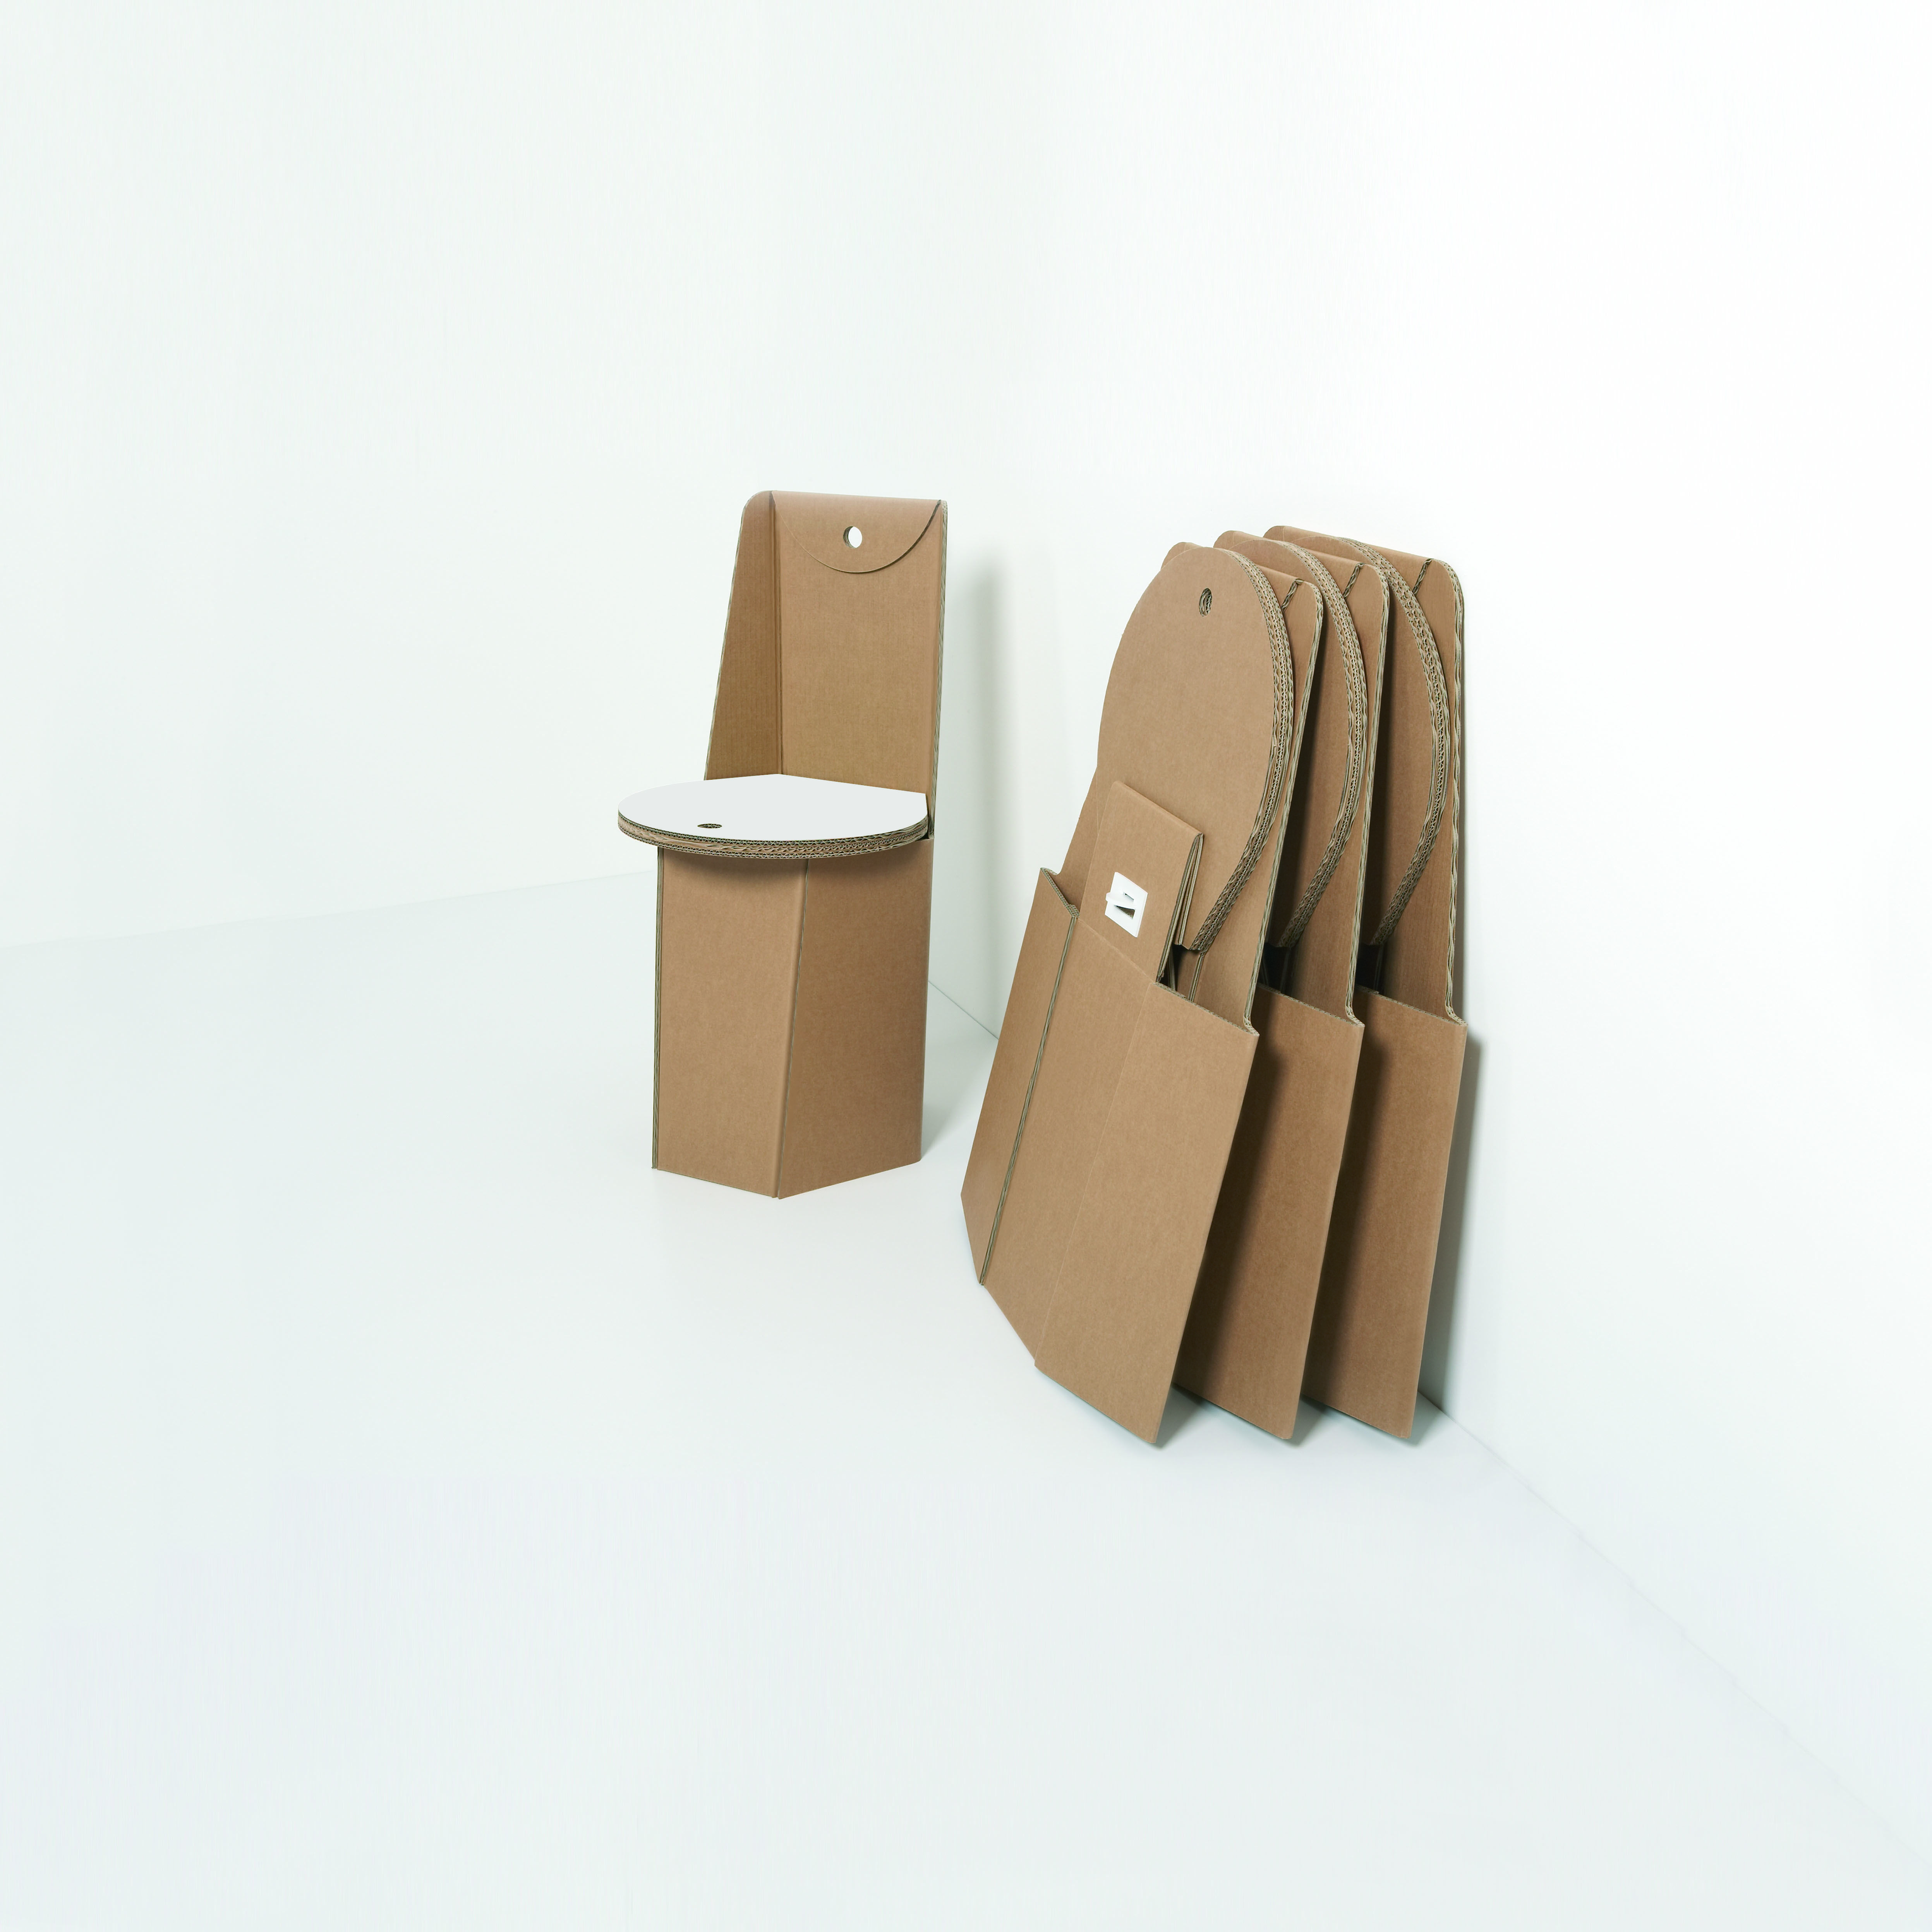 Cardboard chair from #Kubedesign collection - #cardboard ...